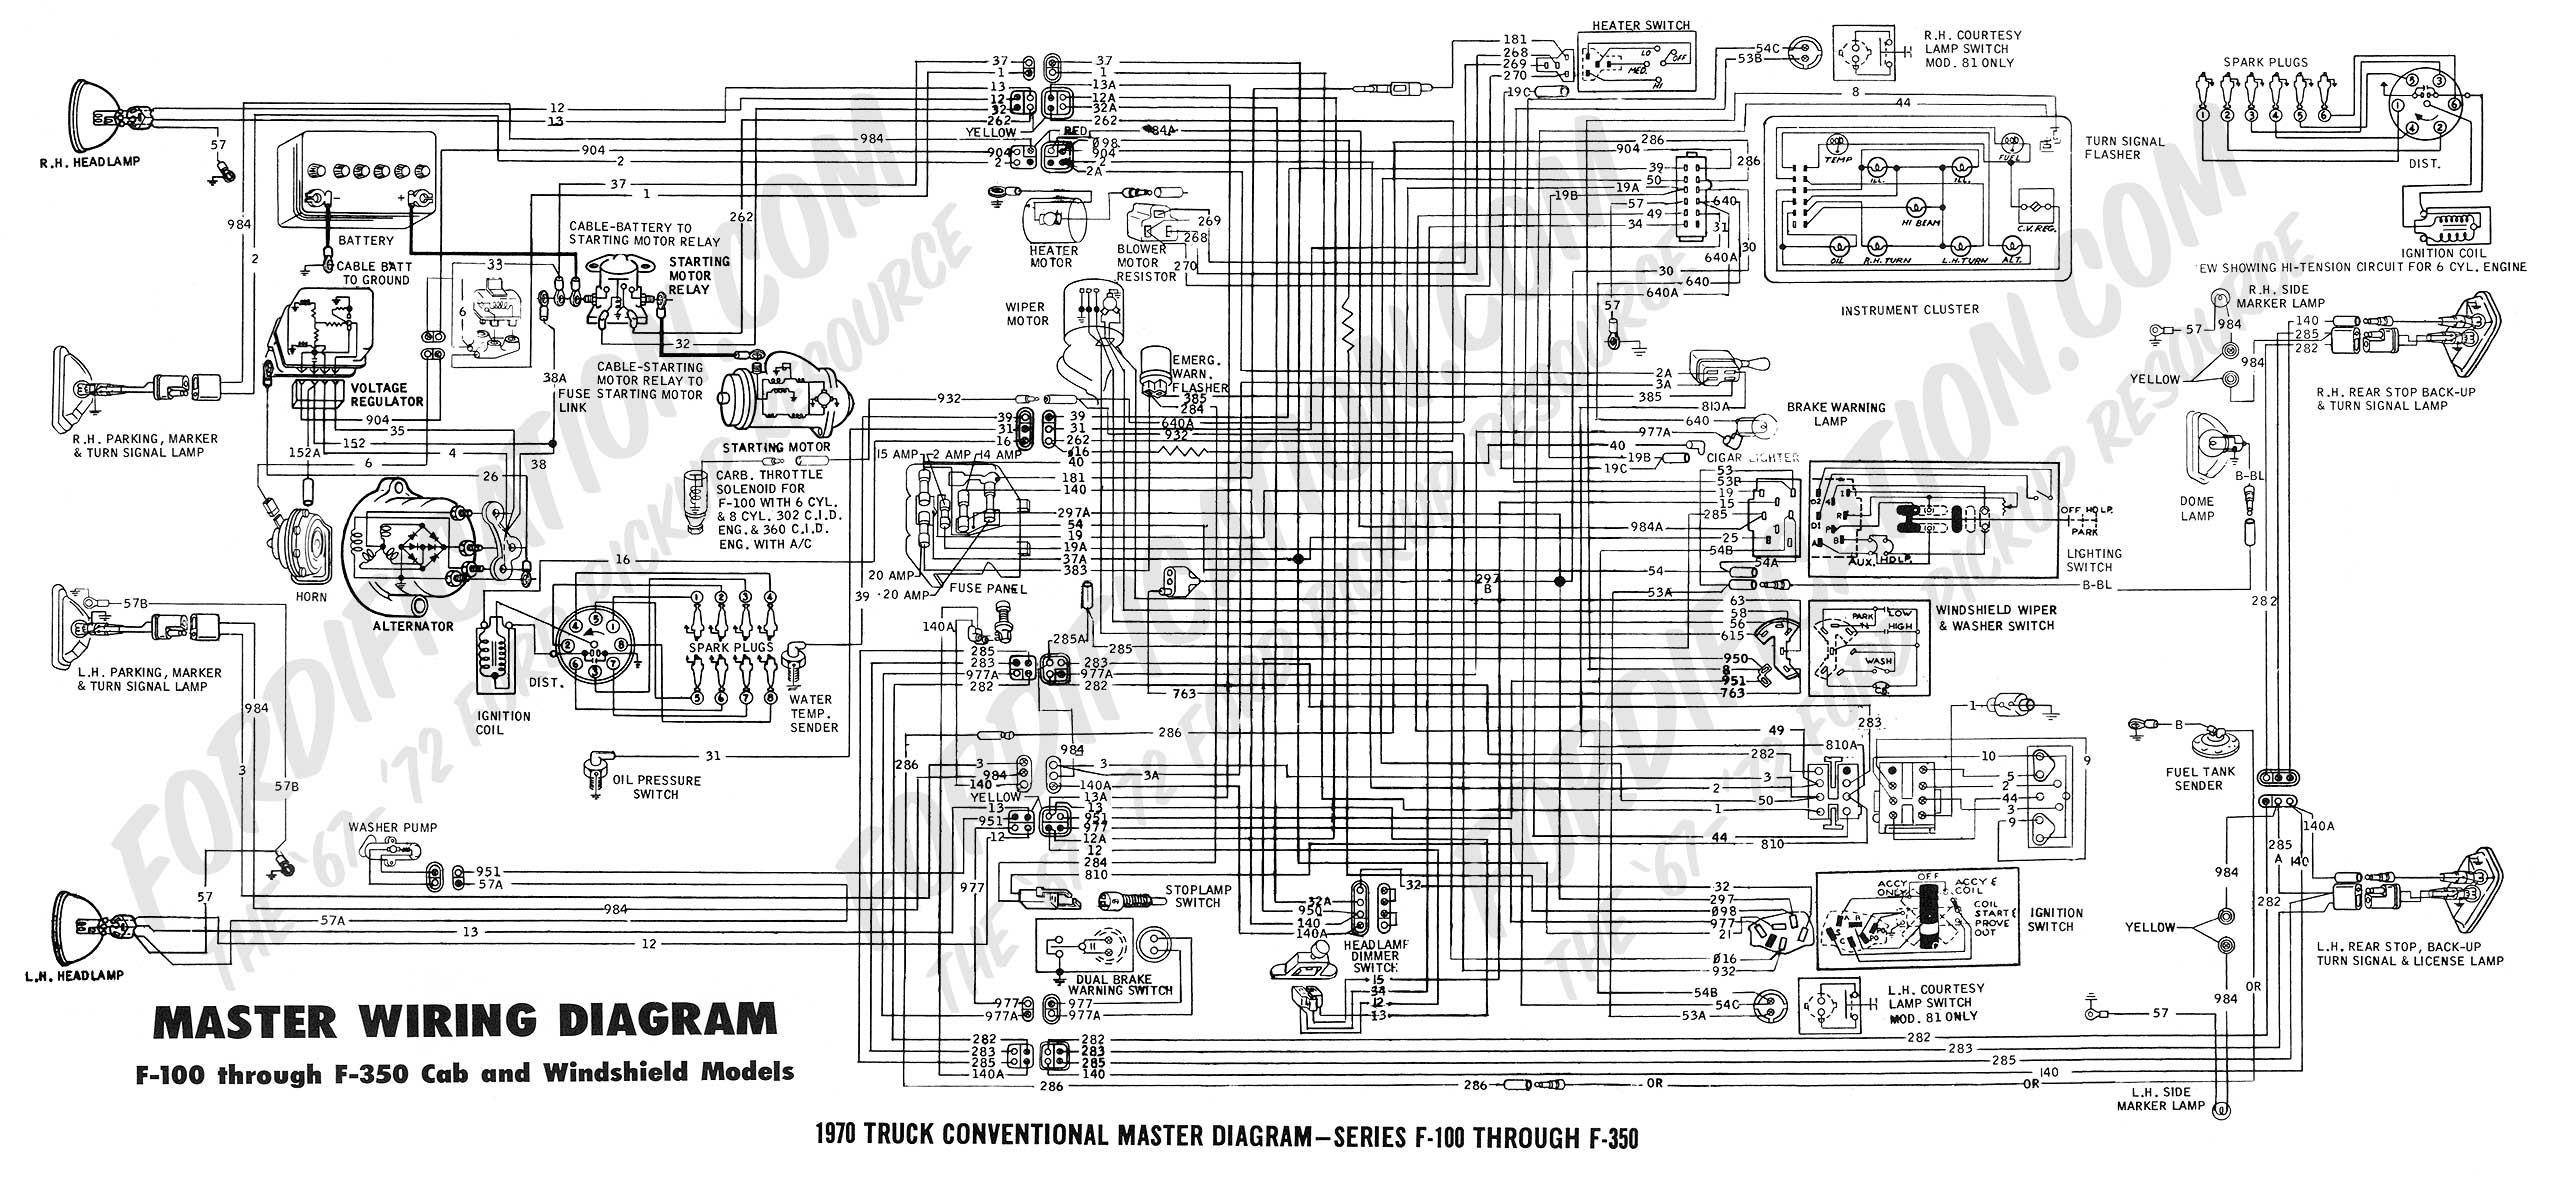 wiring diagram 70_master 1990 f150 wiring diagram 1990 f150 tail light wiring diagram Old Burnham Gas Boiler Vent Damper On at gsmx.co